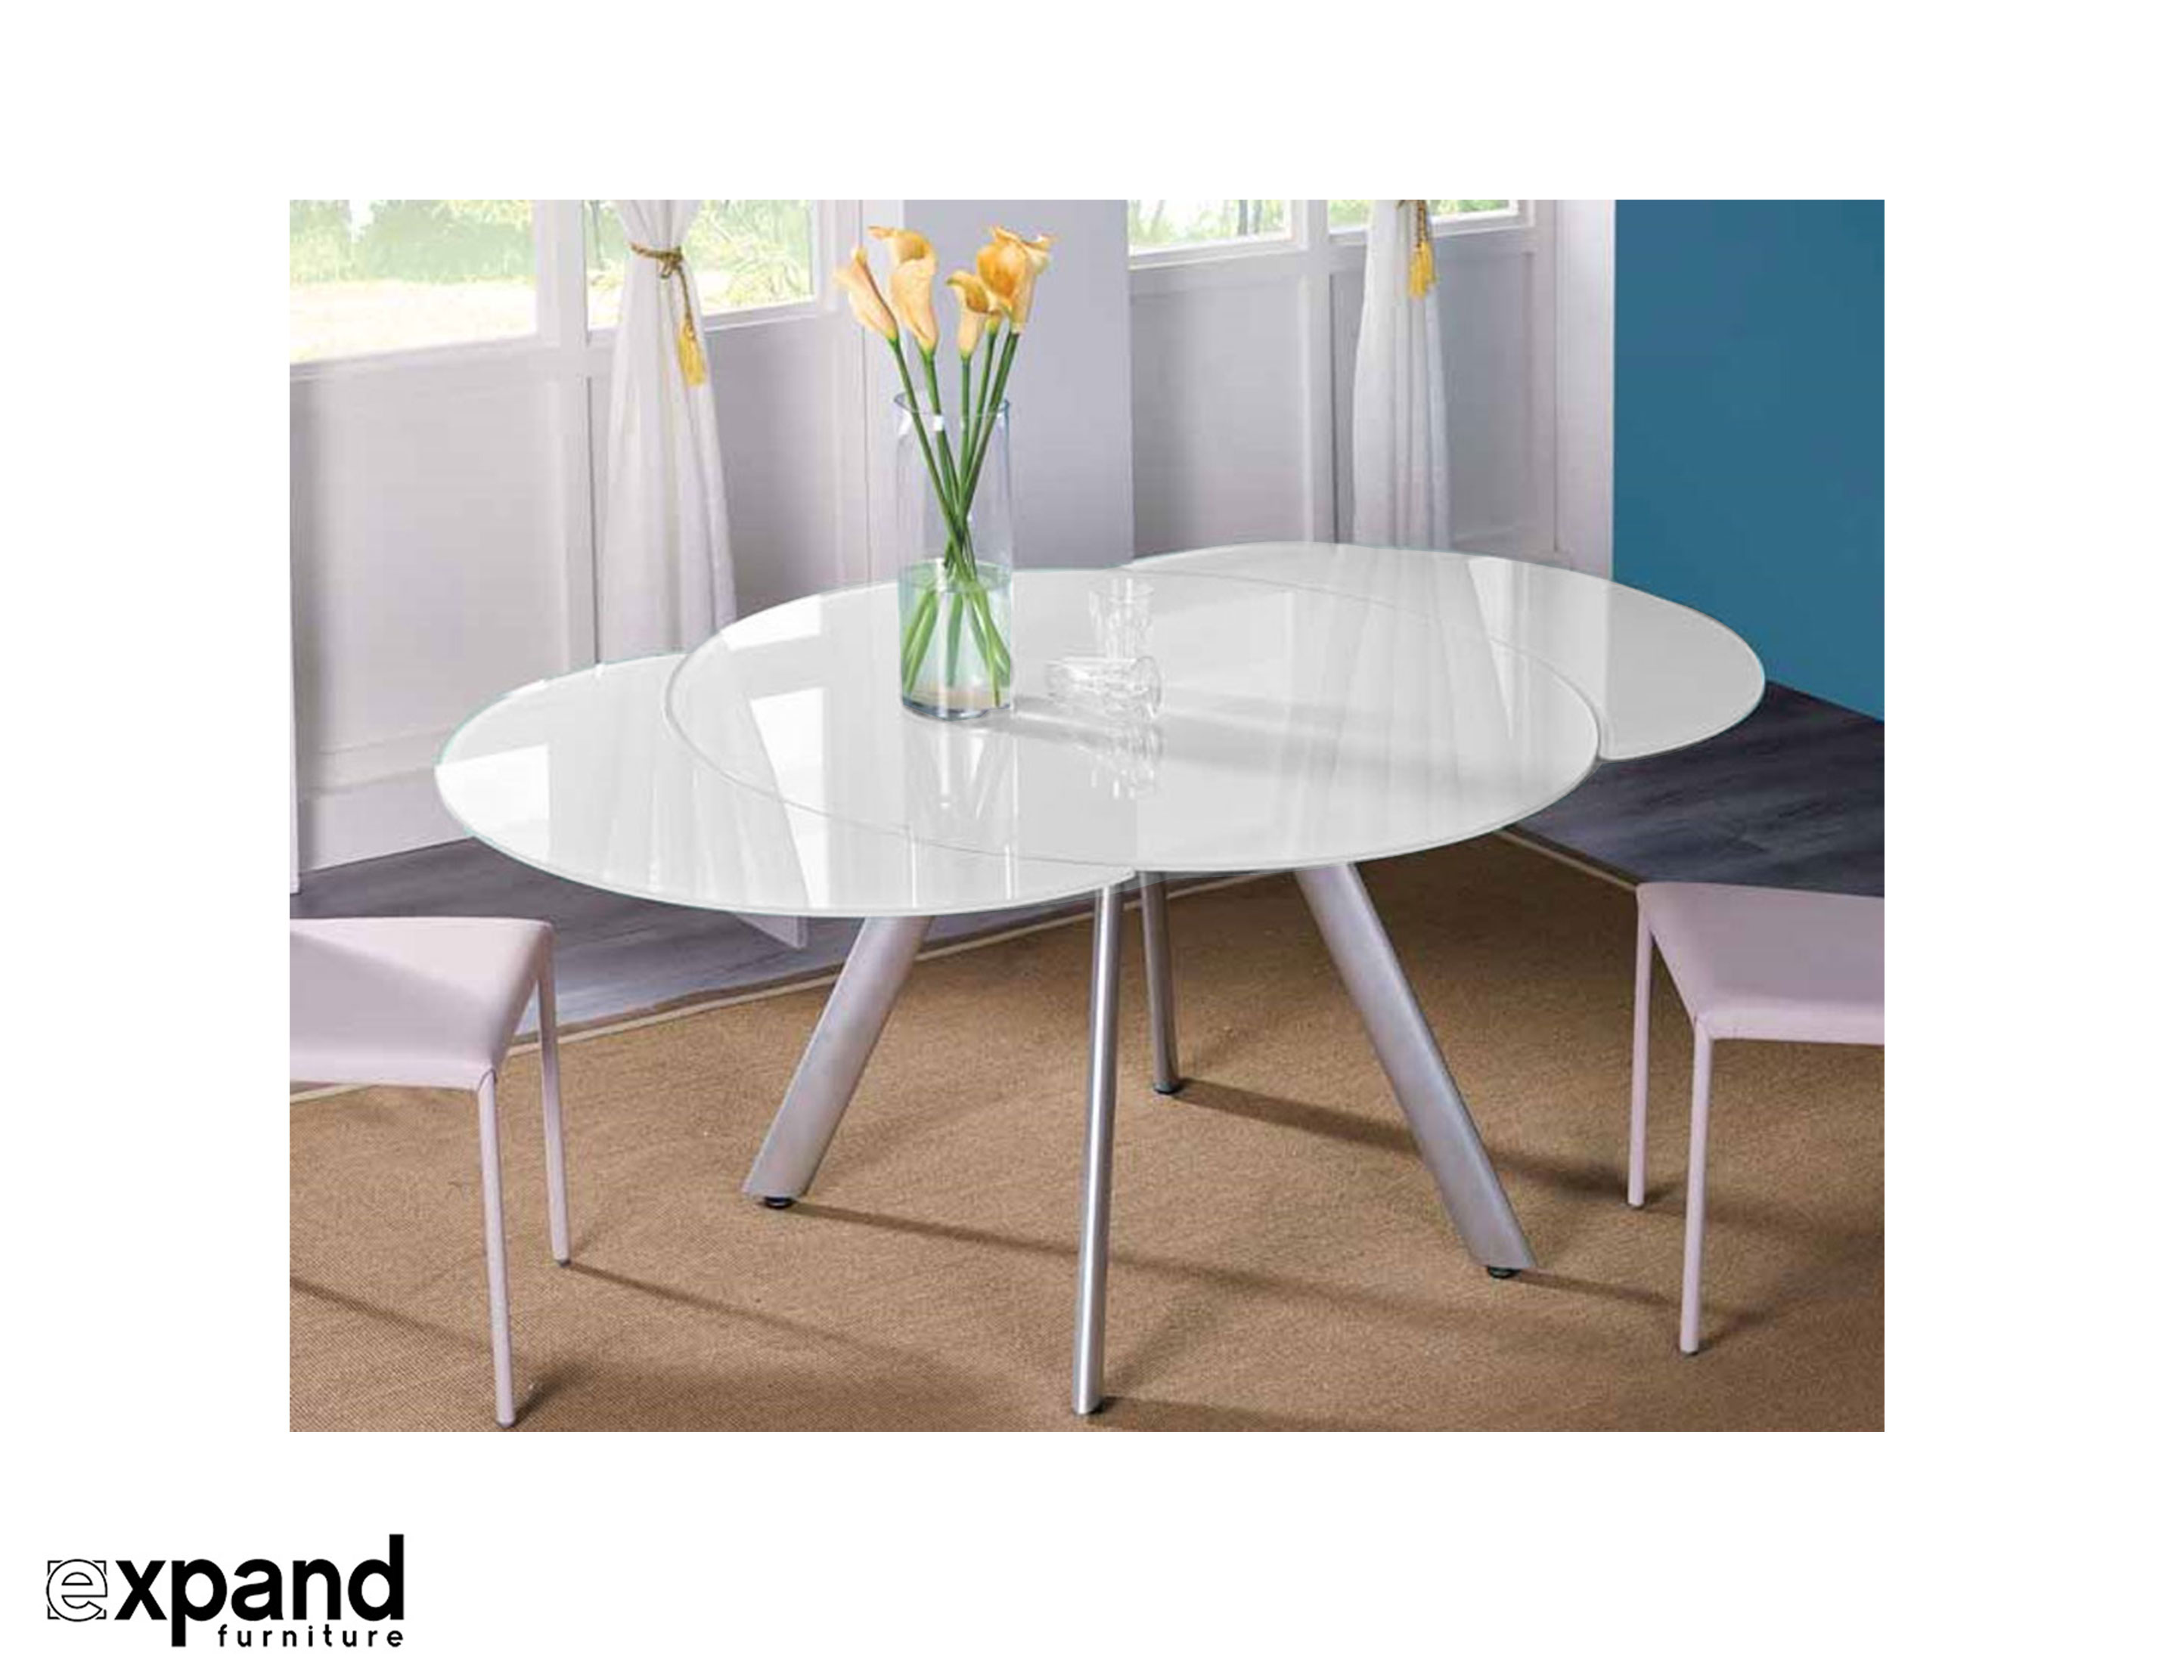 The butterfly expandable round glass dining table expand furniture folding tables smarter Round glass dining table